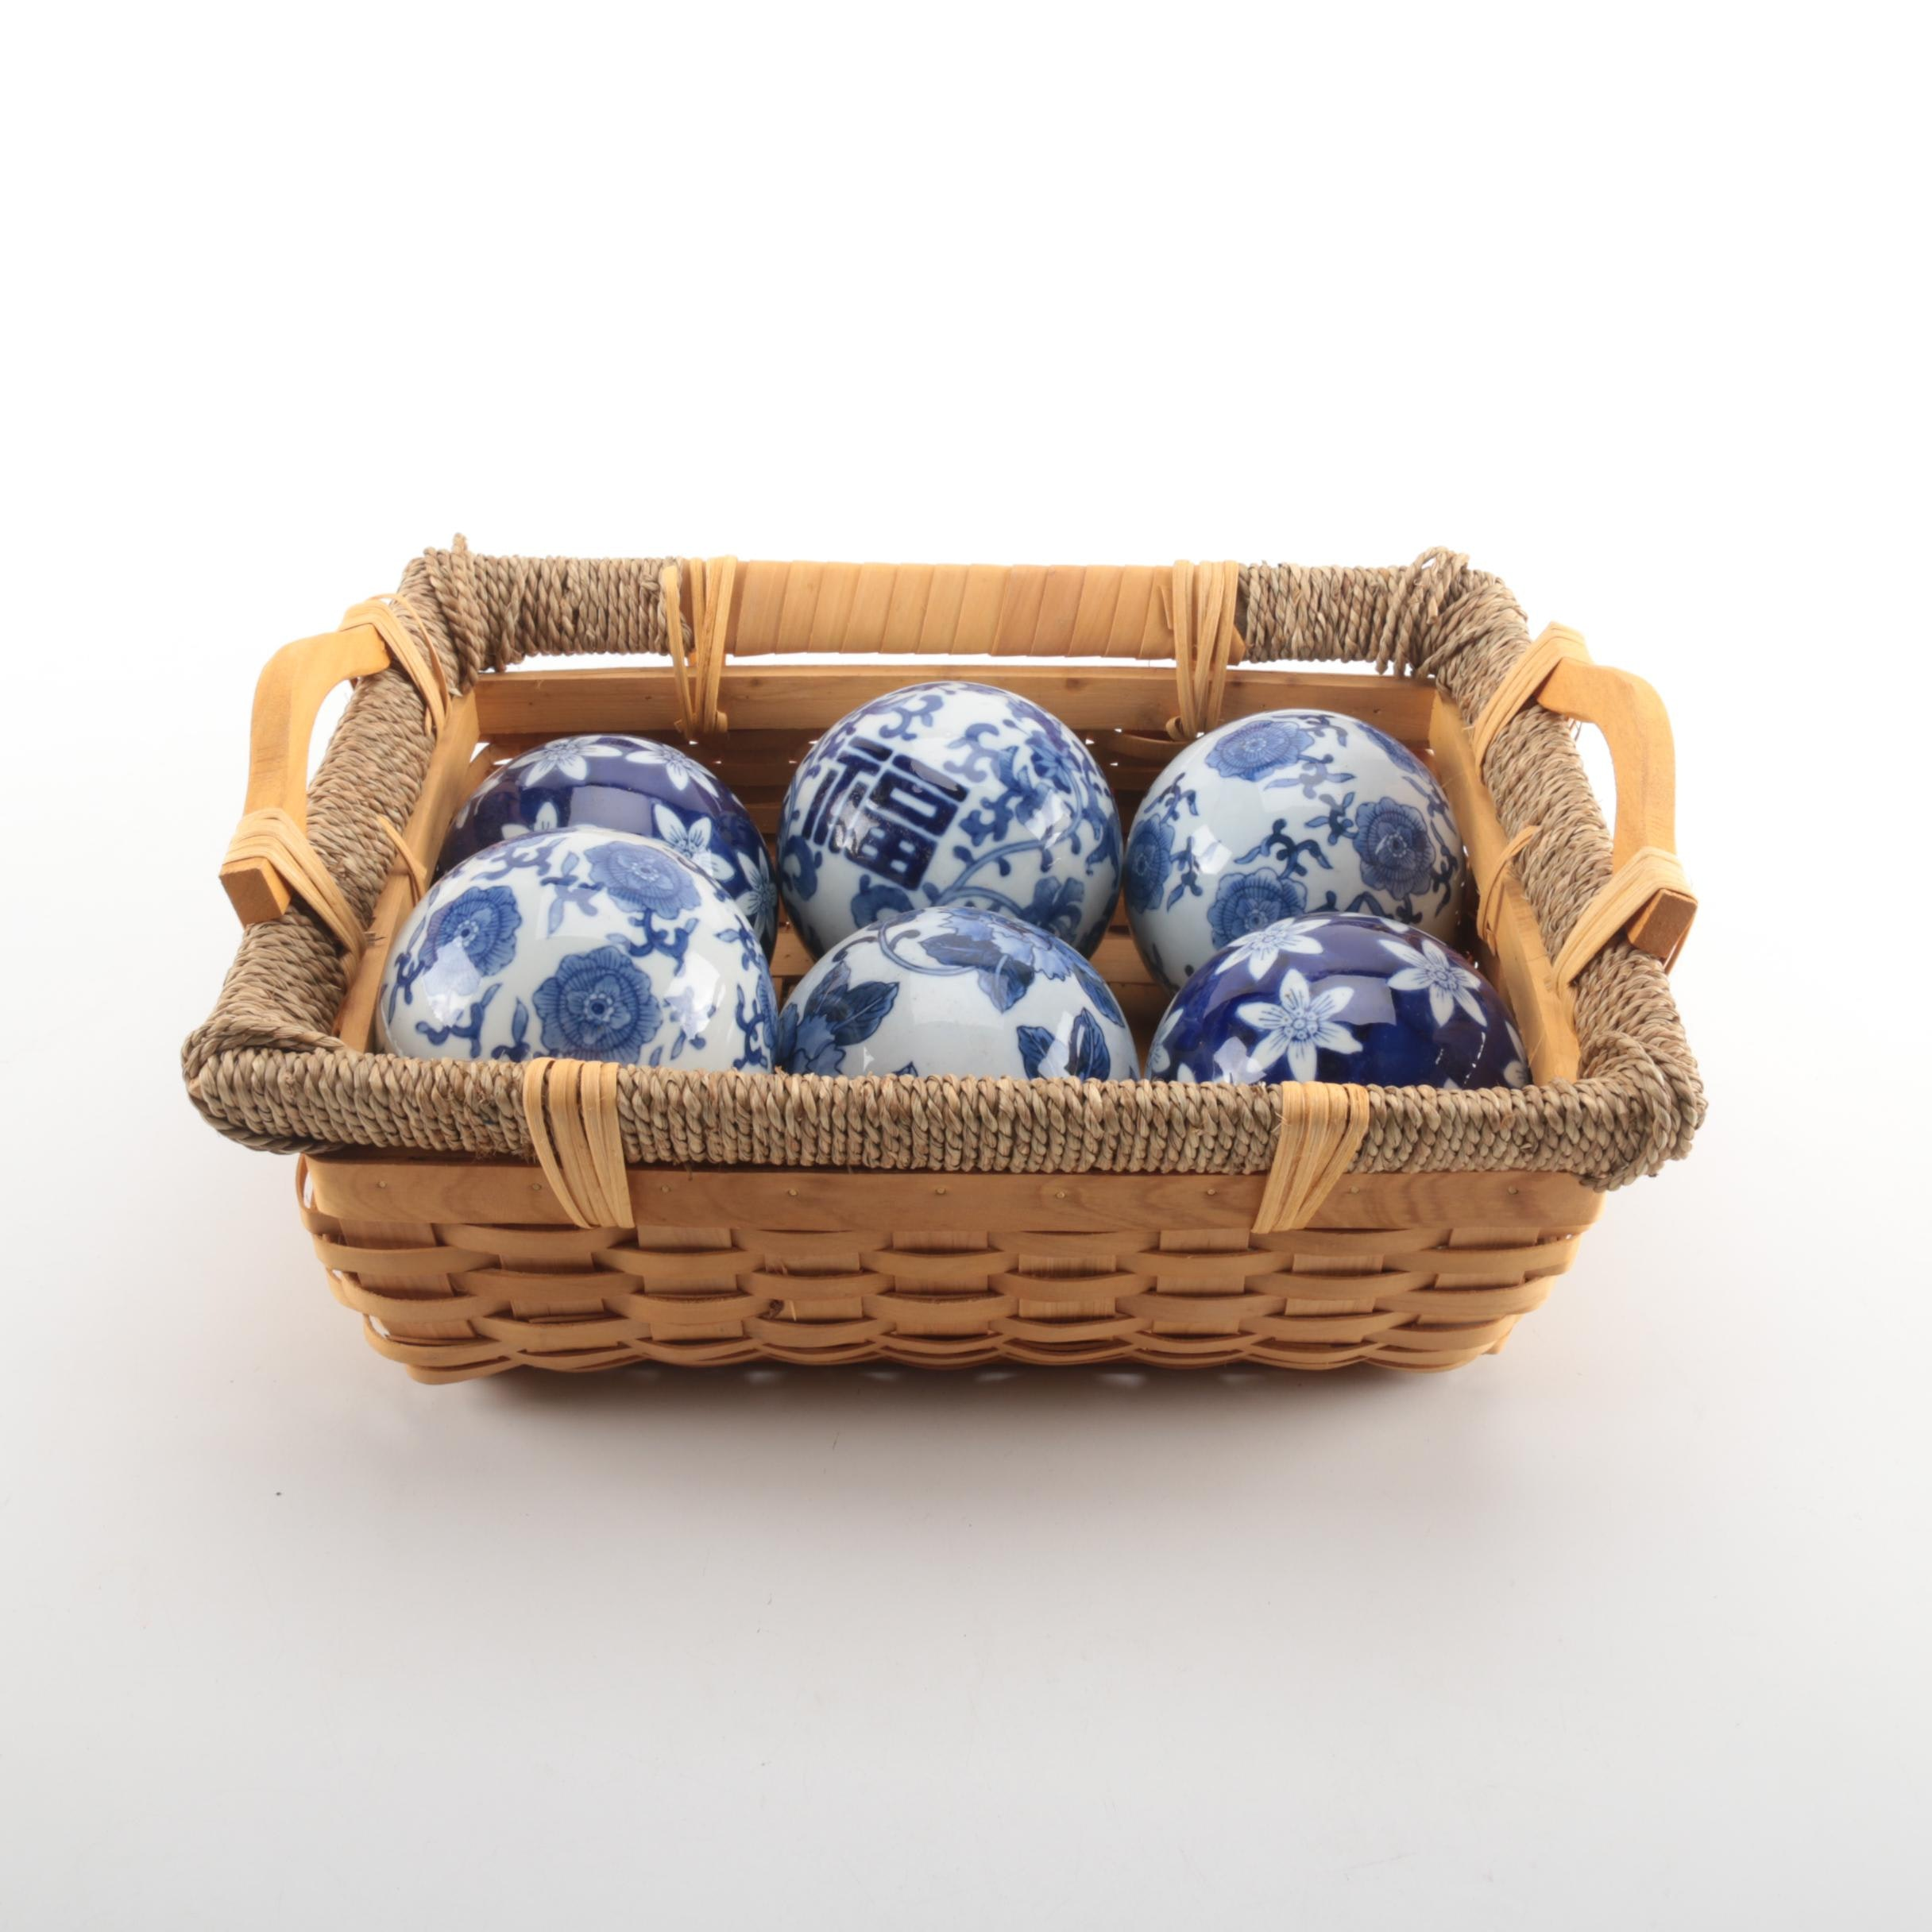 Cobalt Blue and White Decorative Carpet Balls With Woven Basket